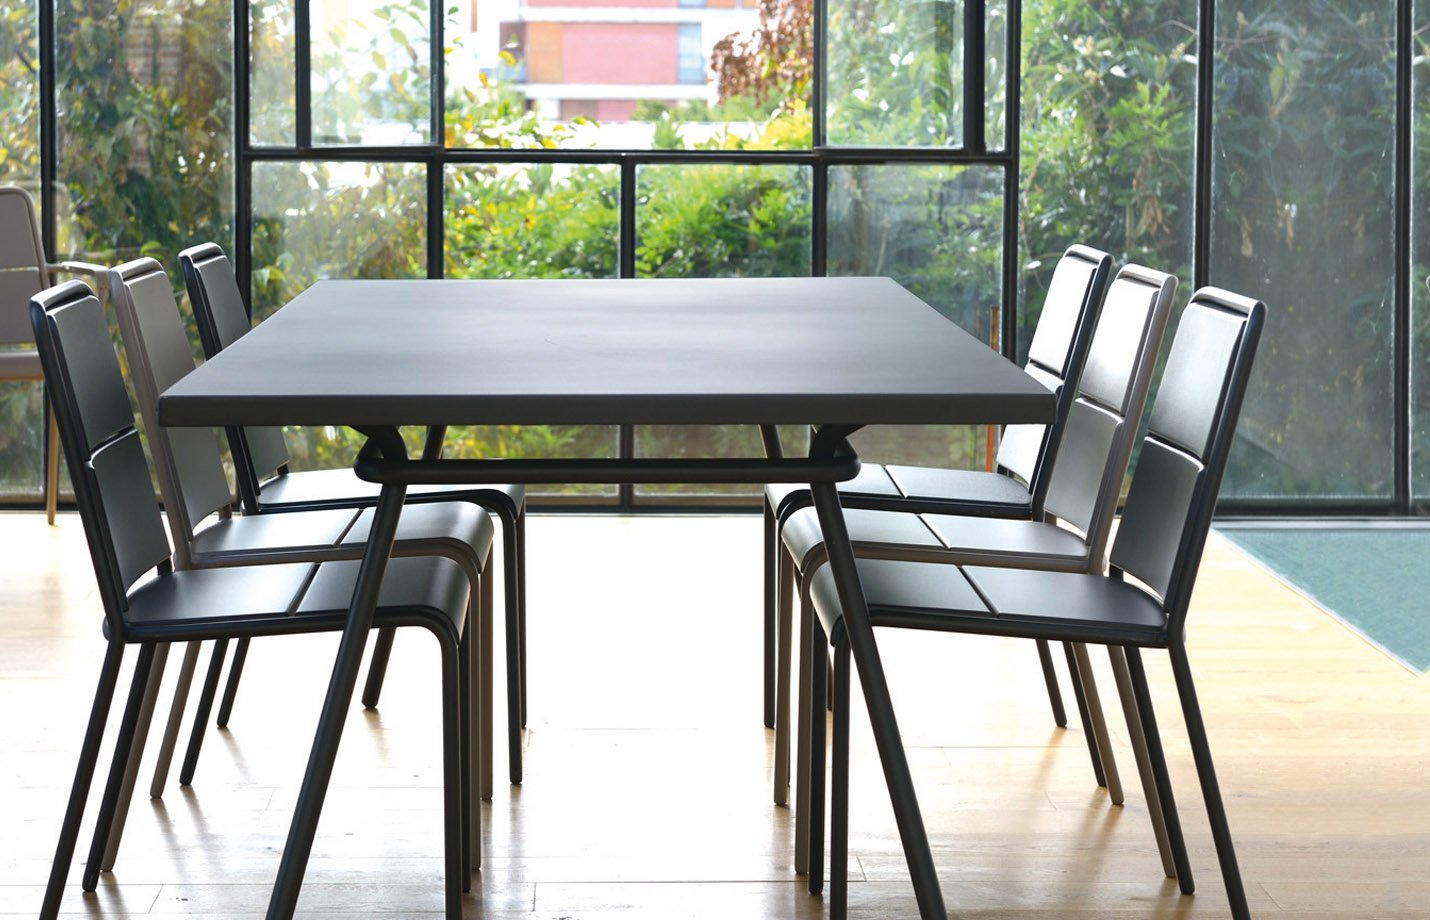 A600 Extension Dining Table